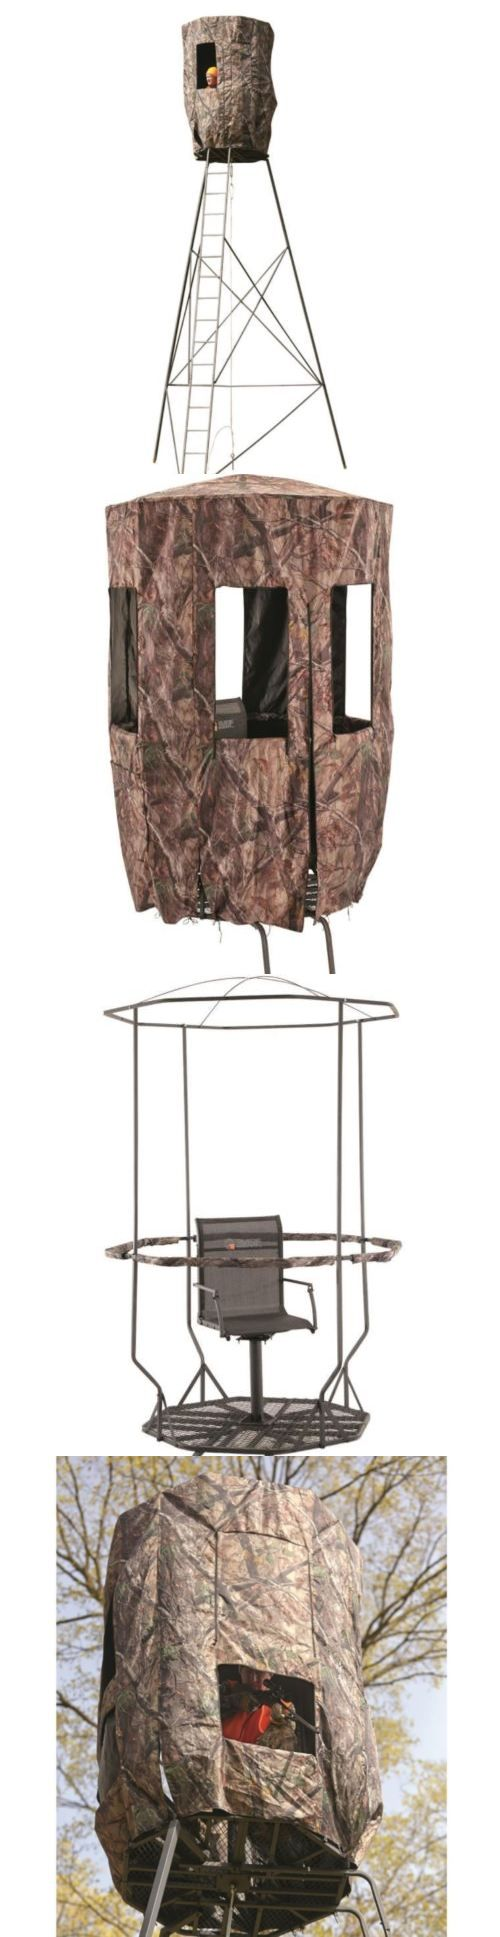 Blinds 177910: 20 Tripod Stand Blind Enclosure Window Shooting Hide Coverage Deer Game Hunting -> BUY IT NOW ONLY: $111.97 on eBay!